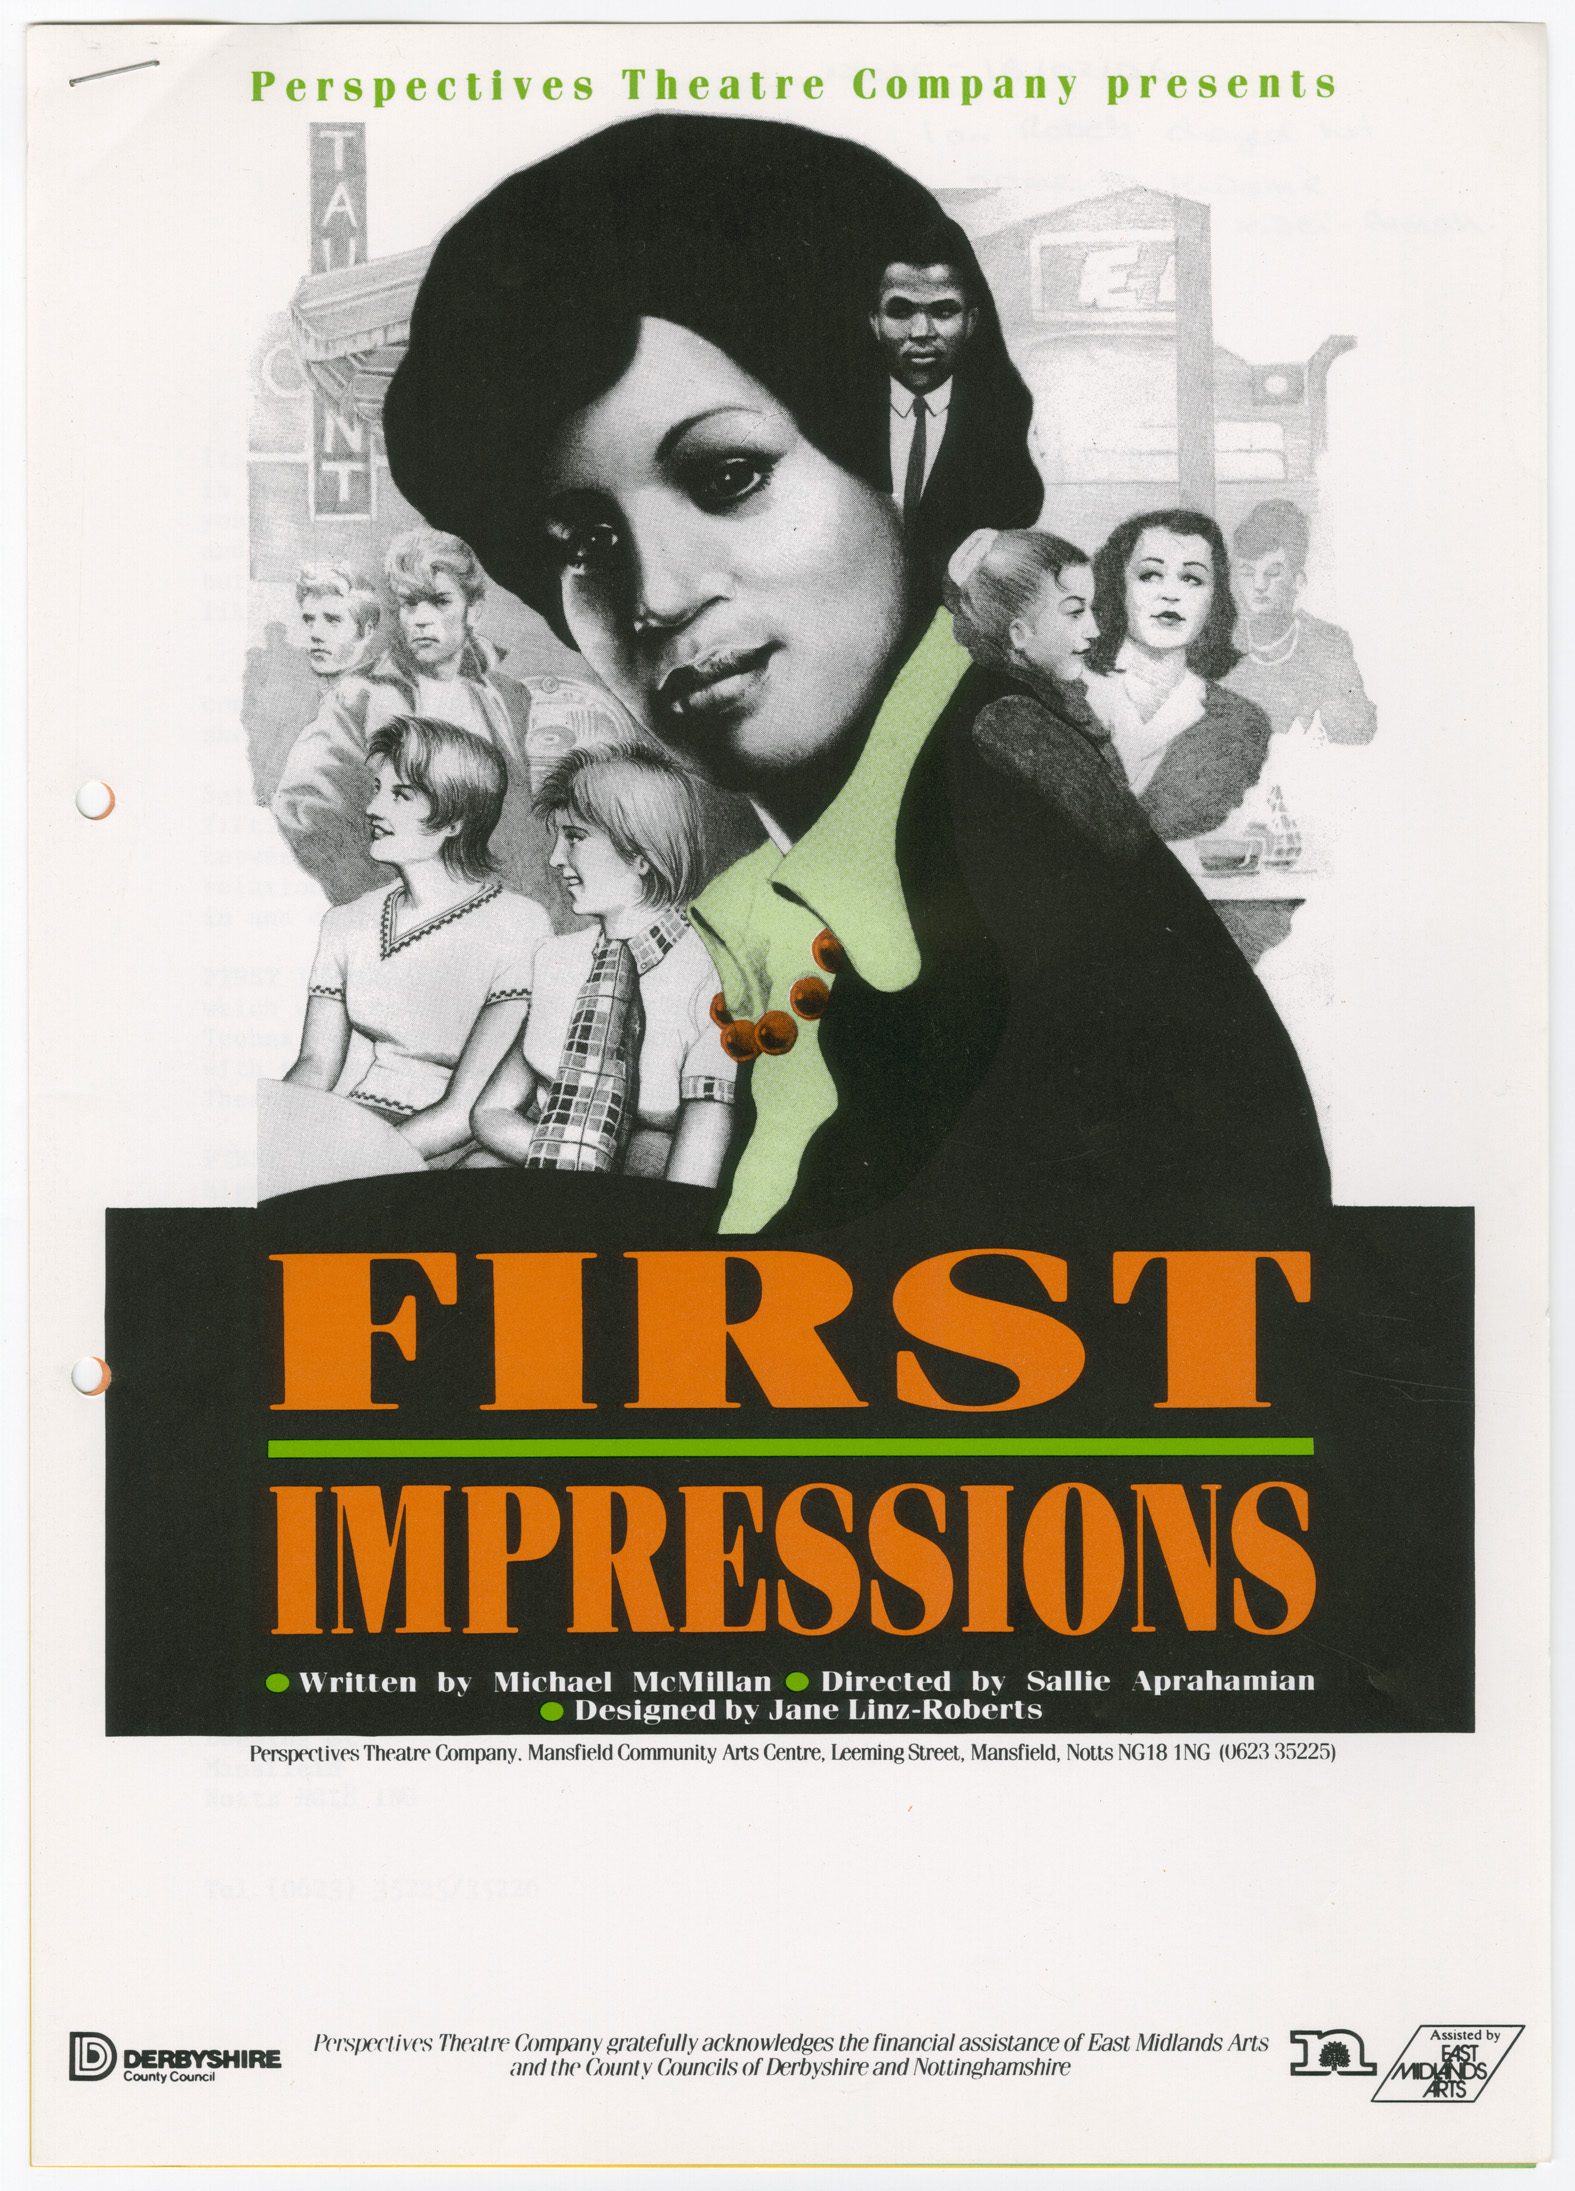 Poster for the play First Impressions, a drawing depicting the head and shoulders of a black woman in the foreground with white memebrs fo the community in the background.